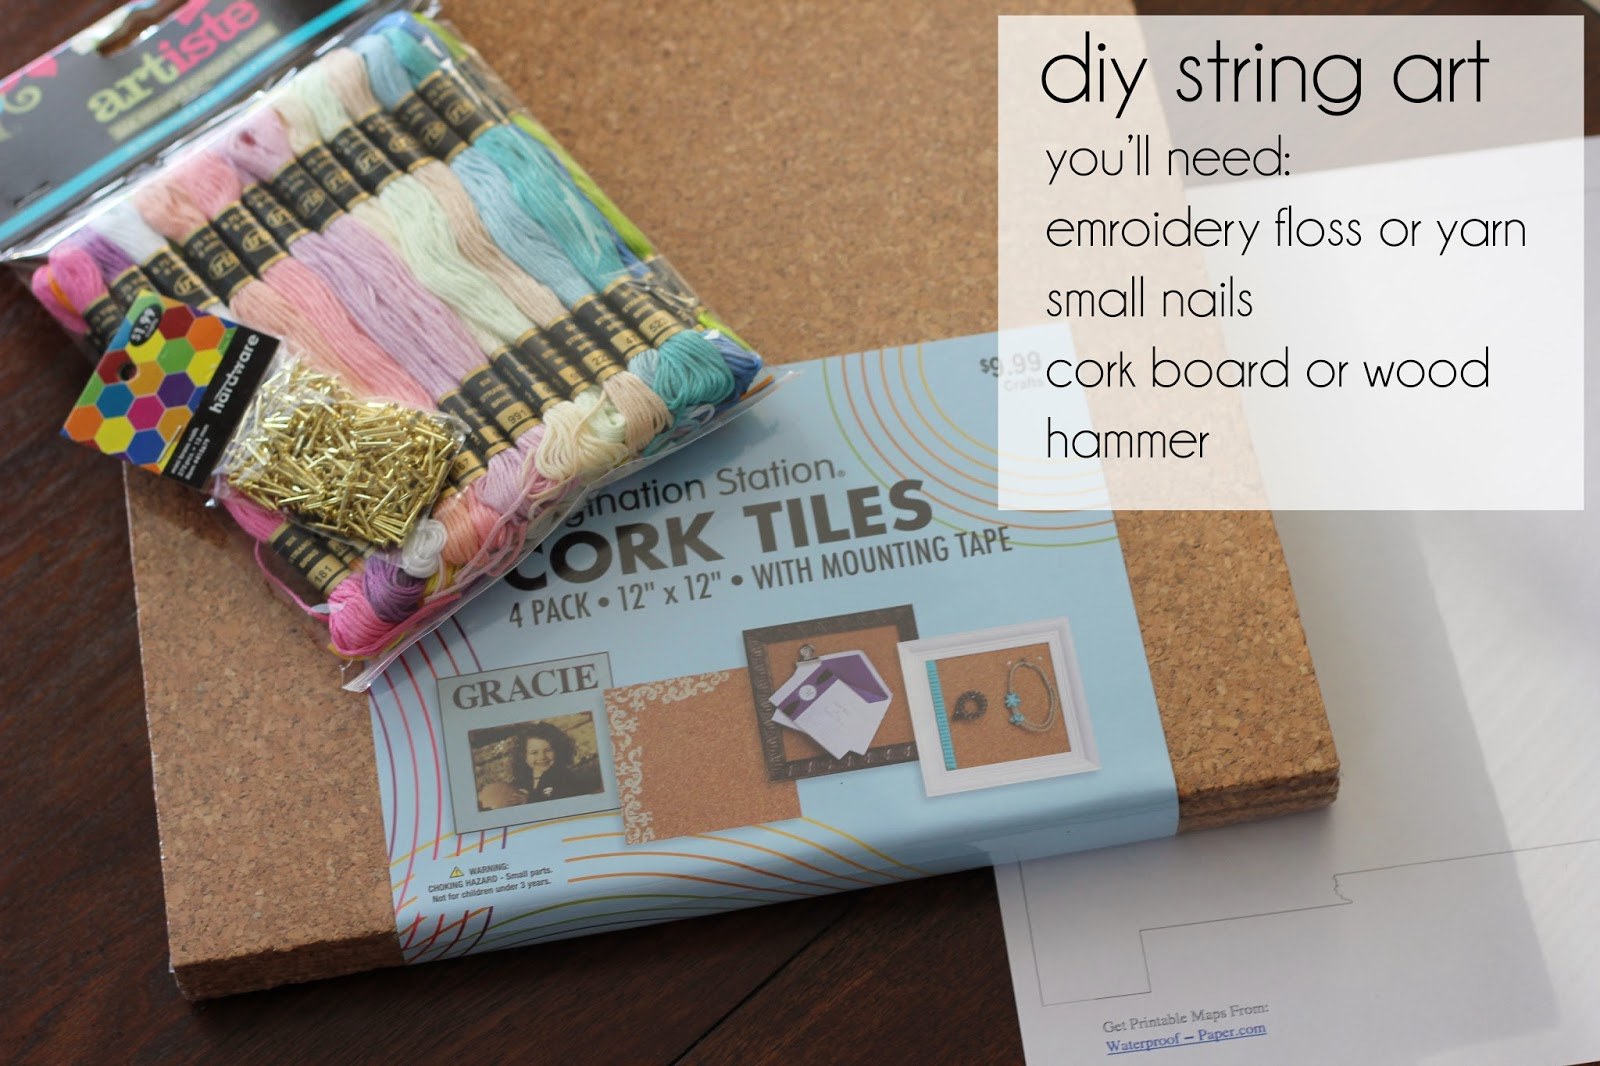 diy-string-art-supplies